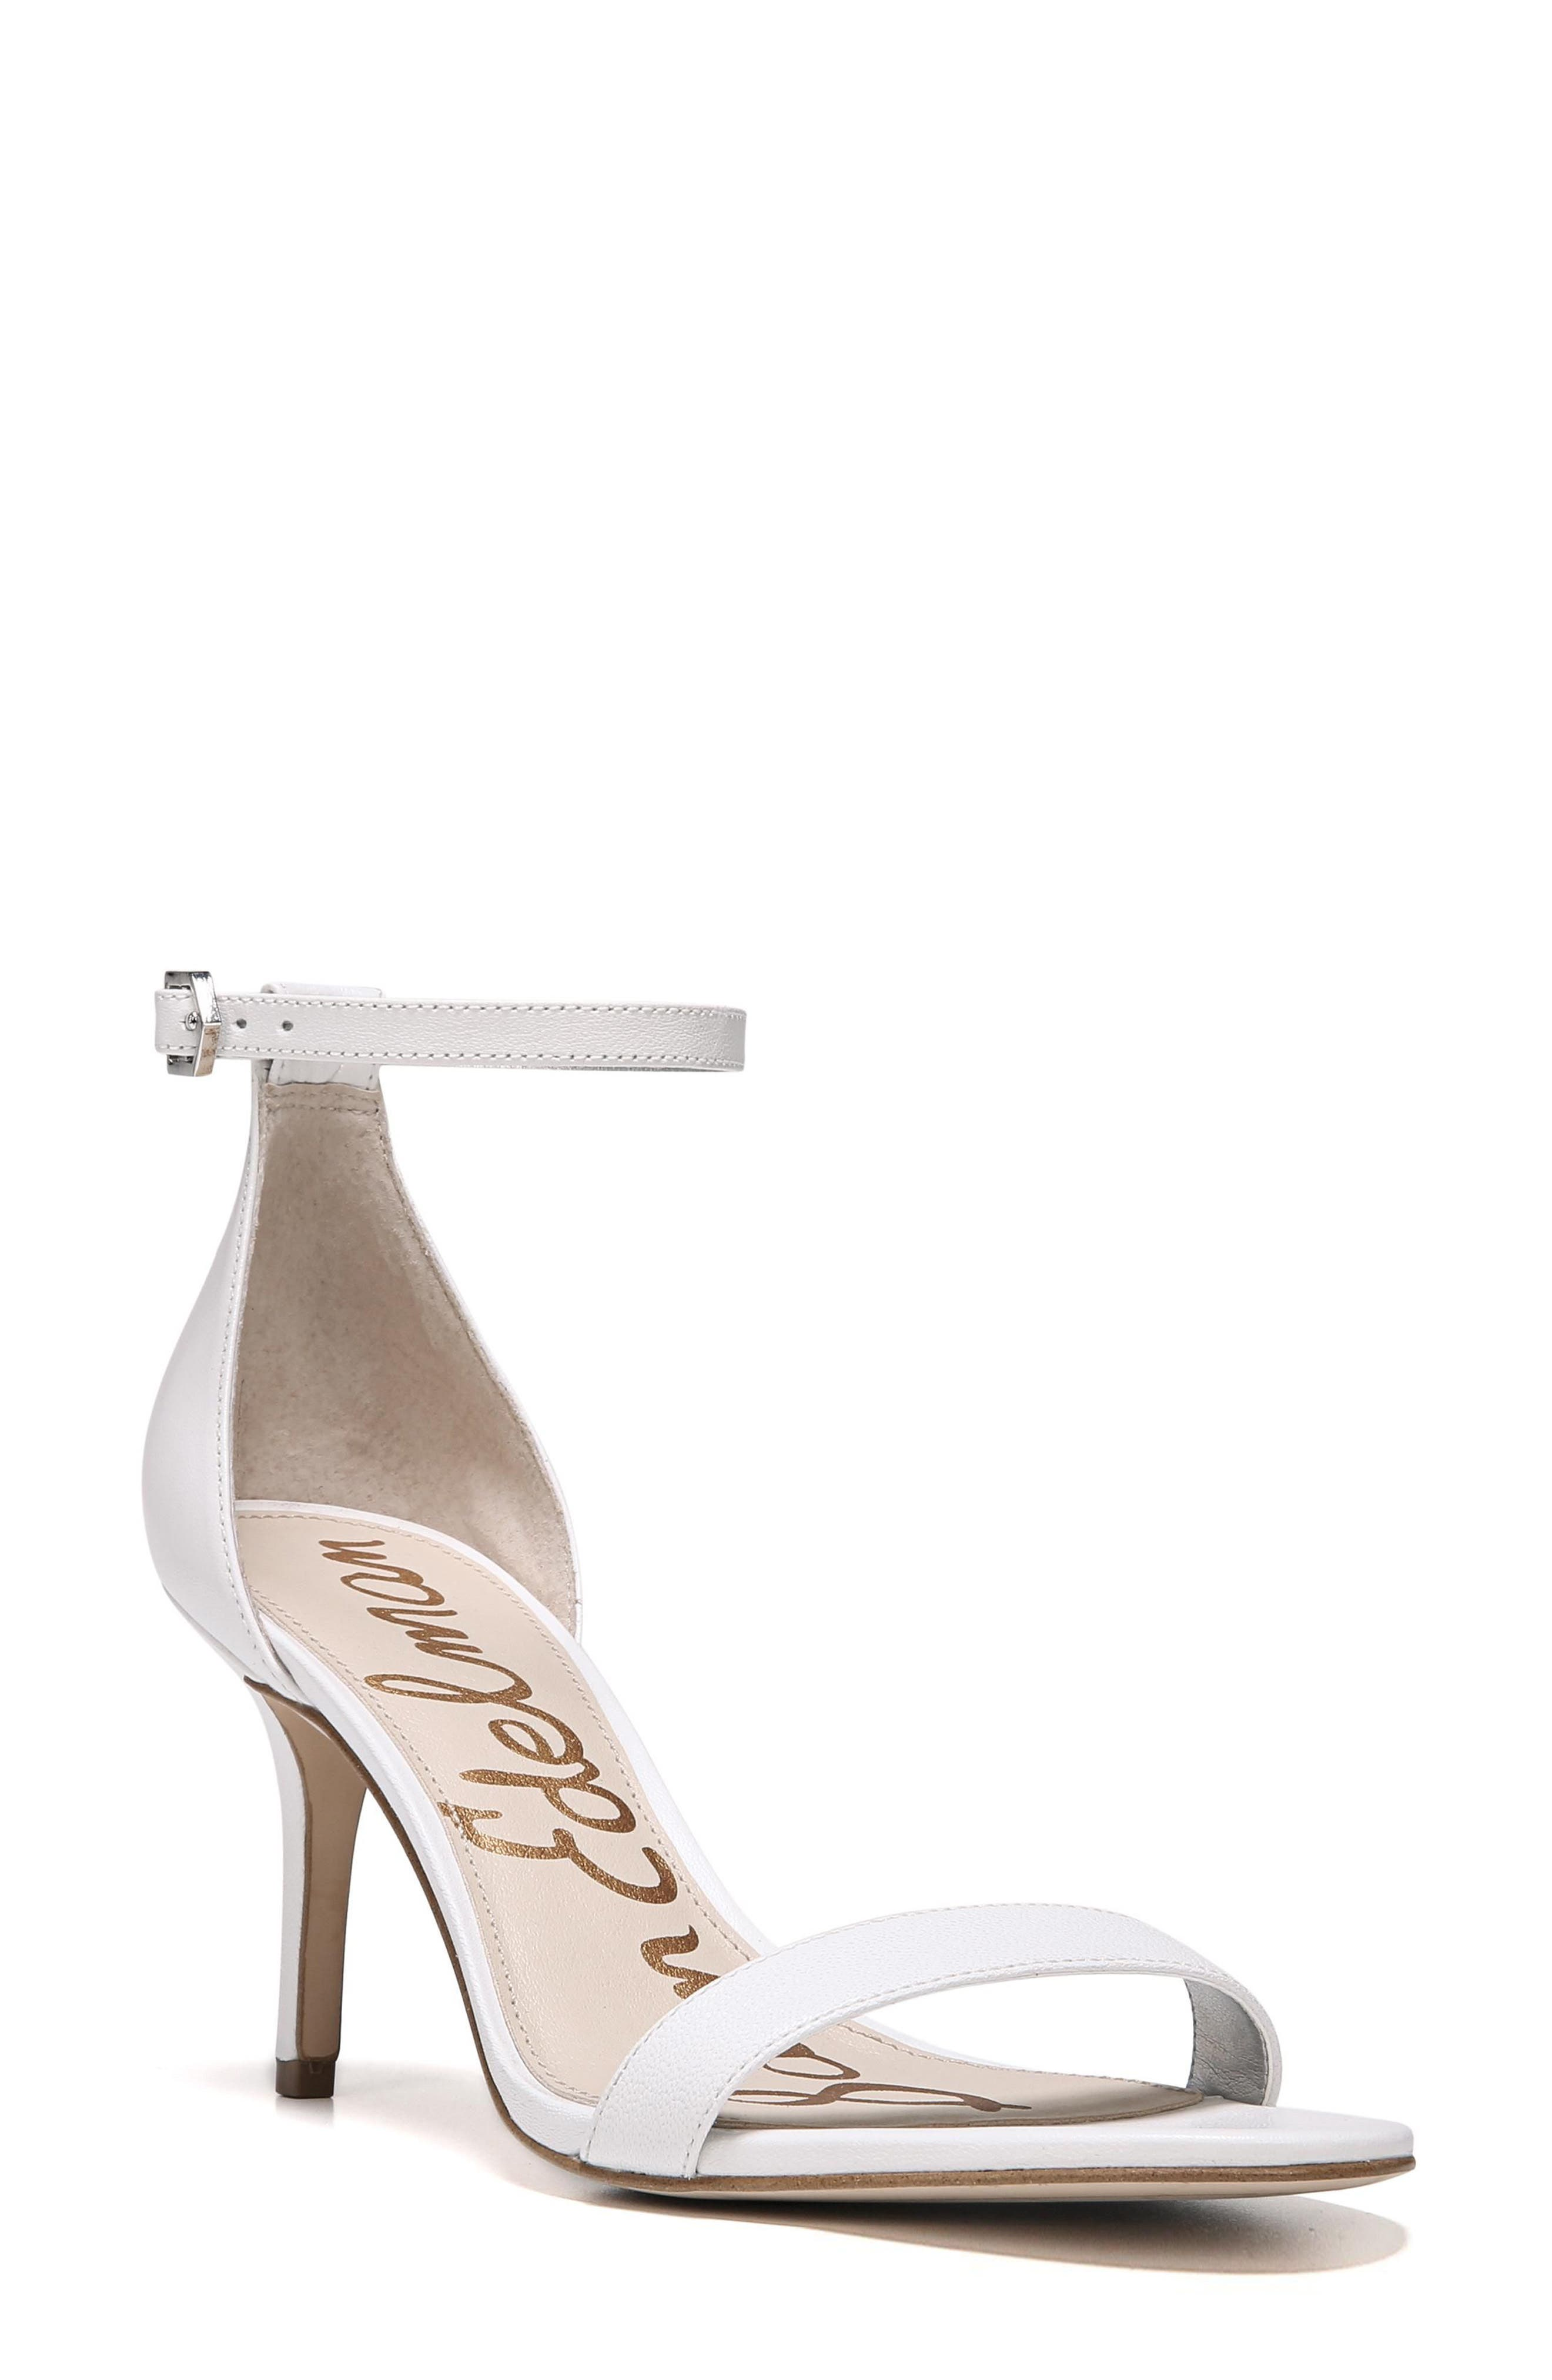 'Patti' Ankle Strap Sandal,                         Main,                         color, BRIGHT WHITE LEATHER